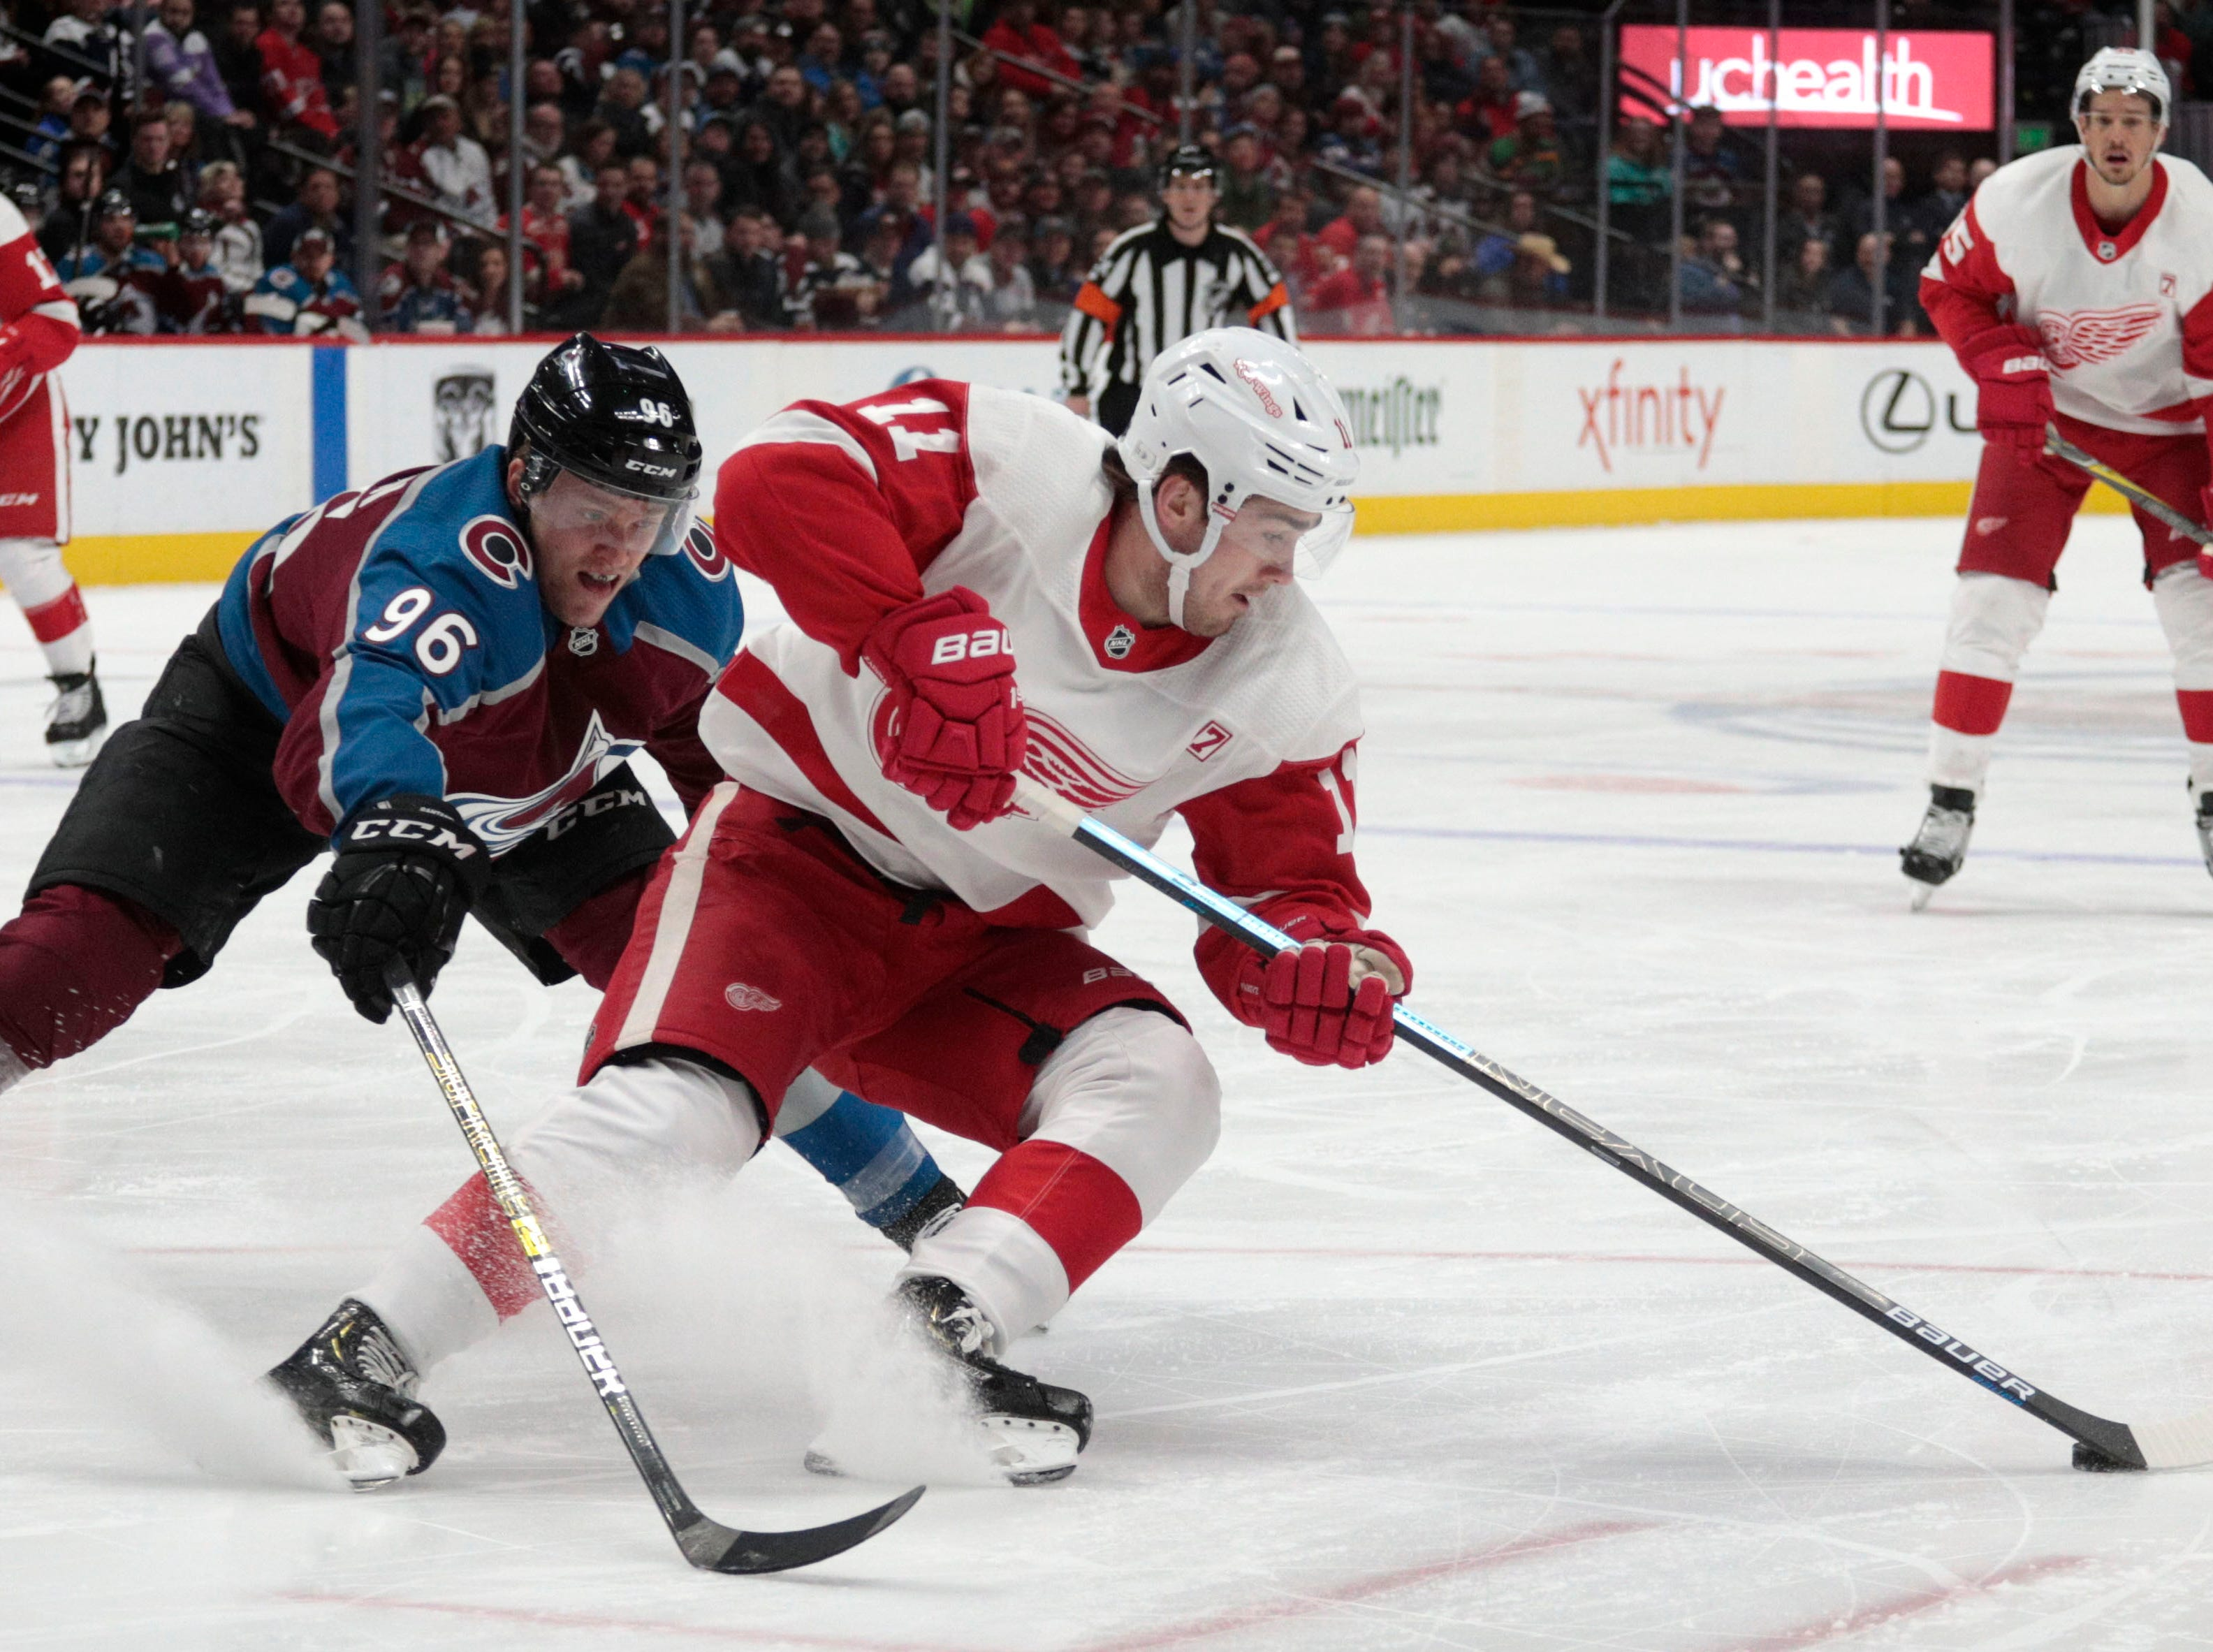 Colorado Avalanche right wing Mikko Rantanen (96) defends against Detroit Red Wings right wing Filip Zadina (11) during the second period of an NHL hockey game in Denver, Tuesday, March 5, 2019.